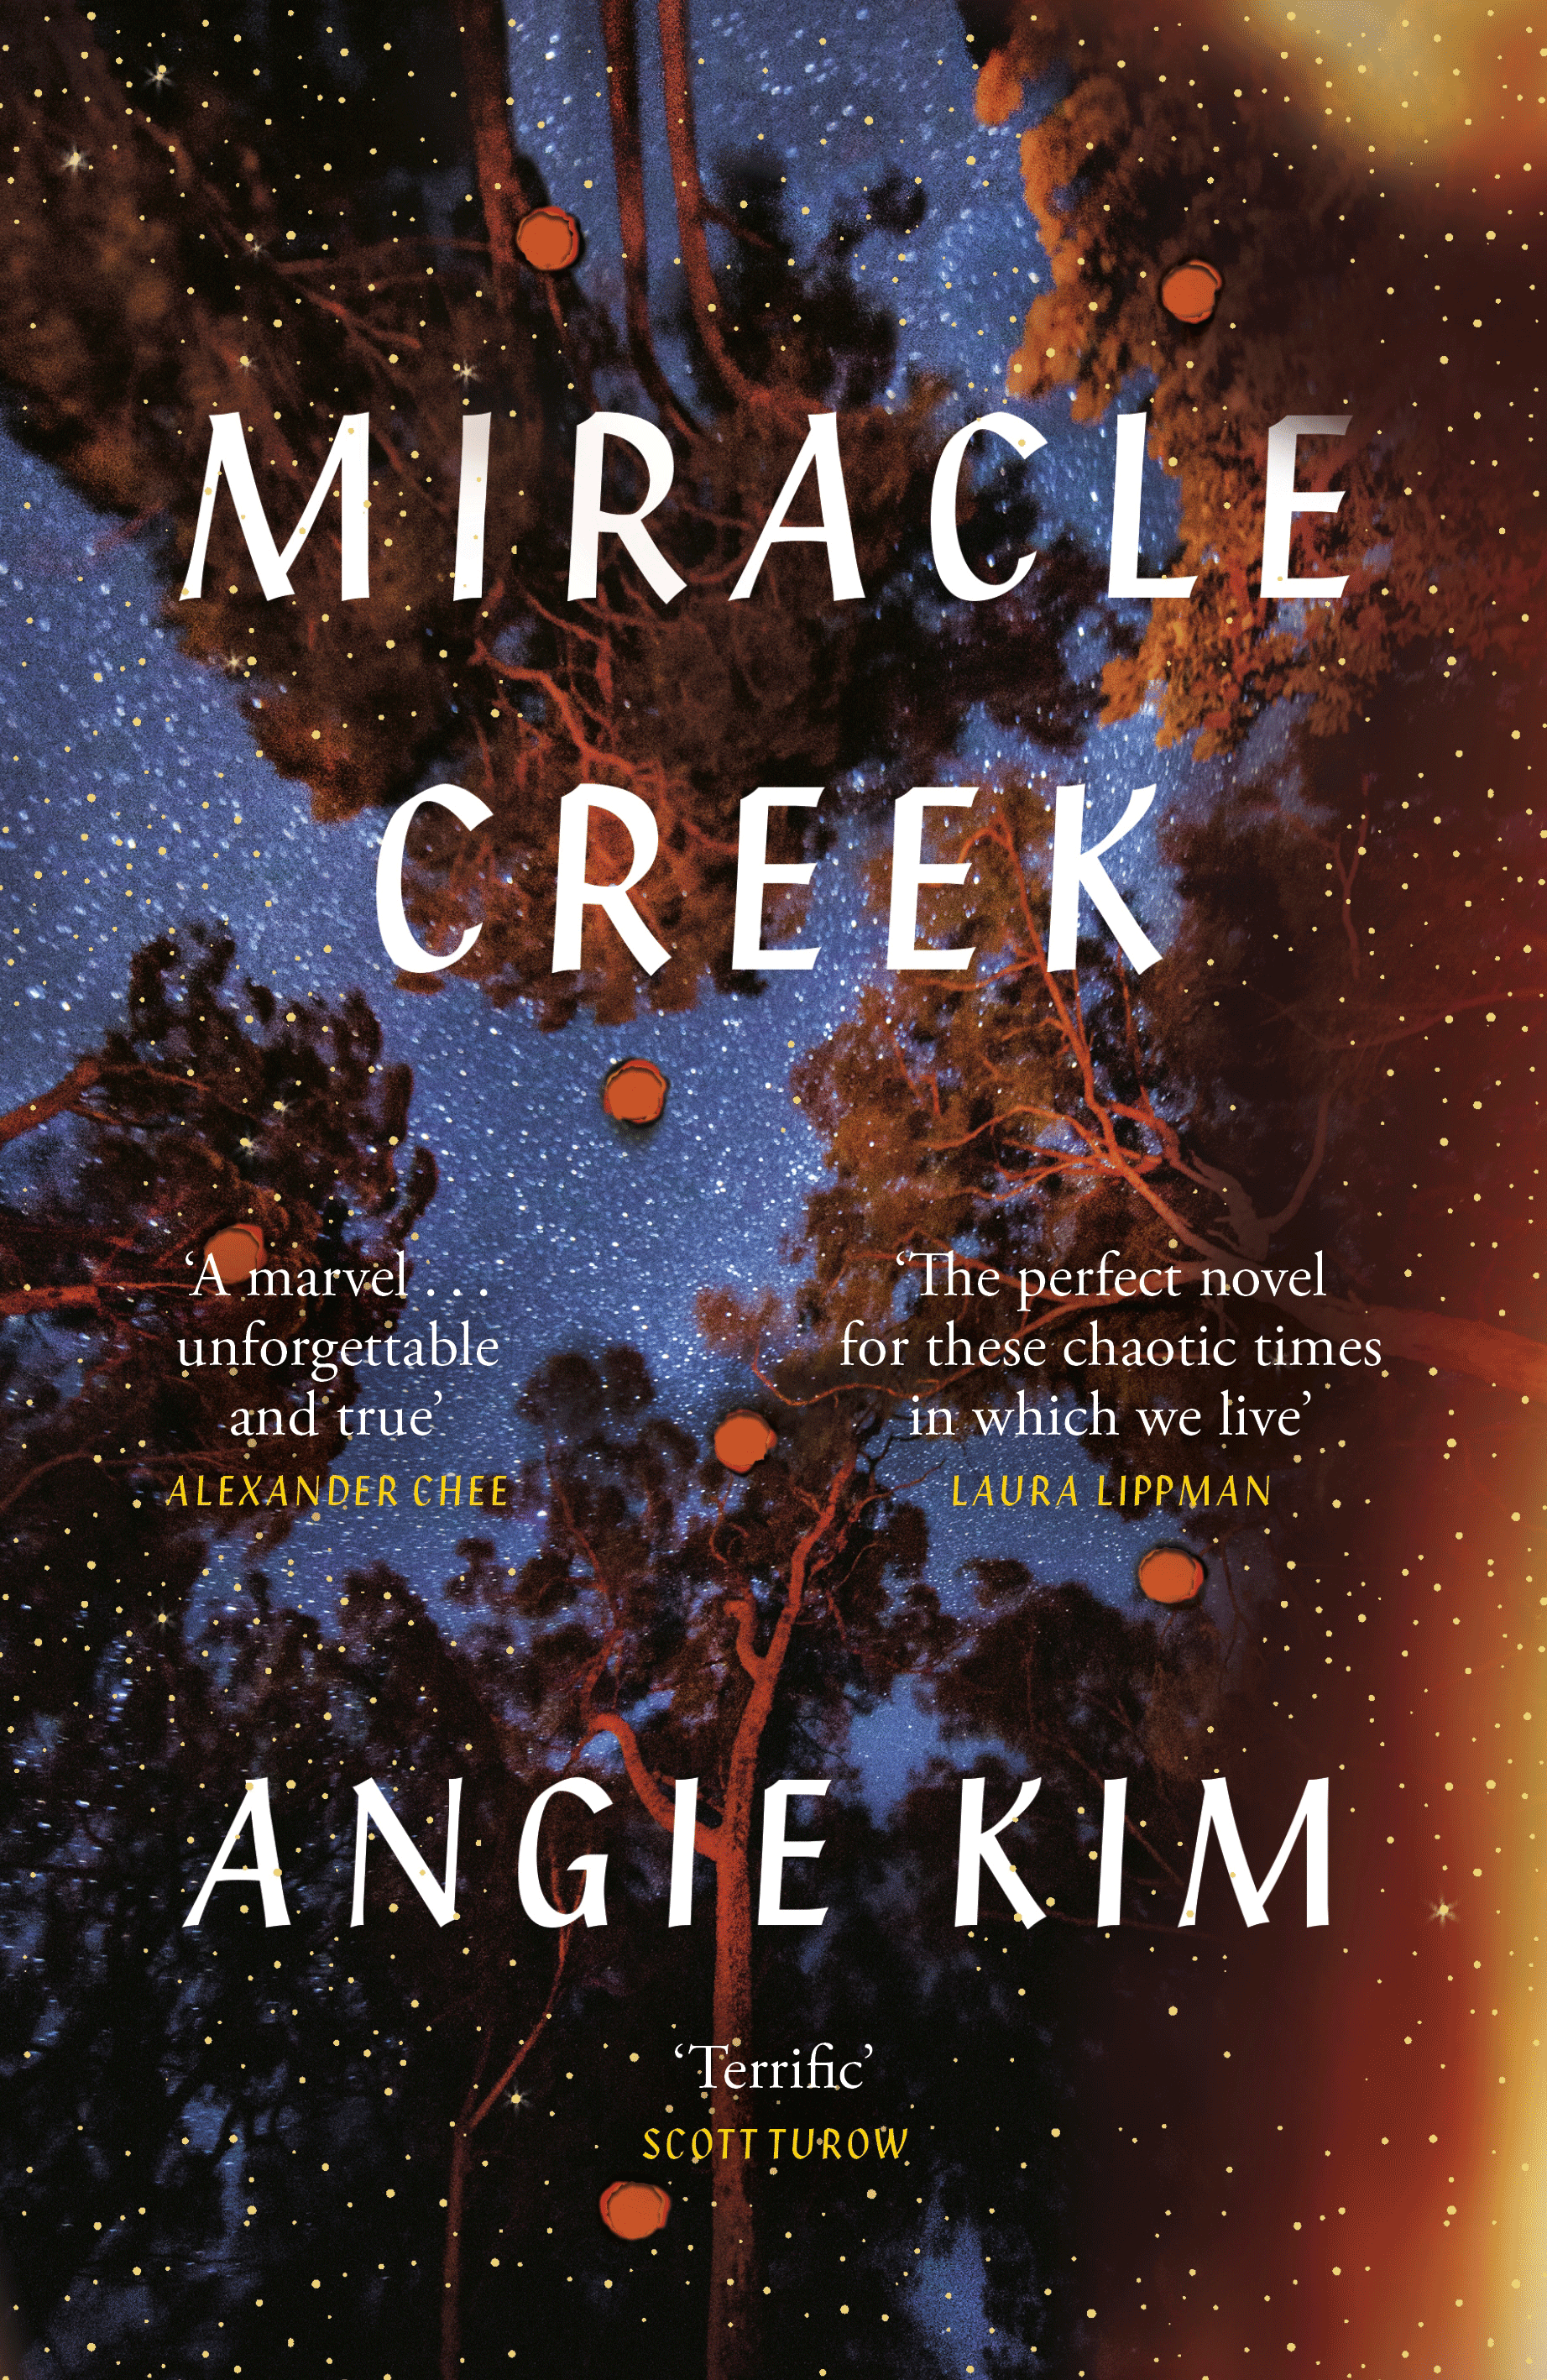 Miracle Creek by author Angie Kim